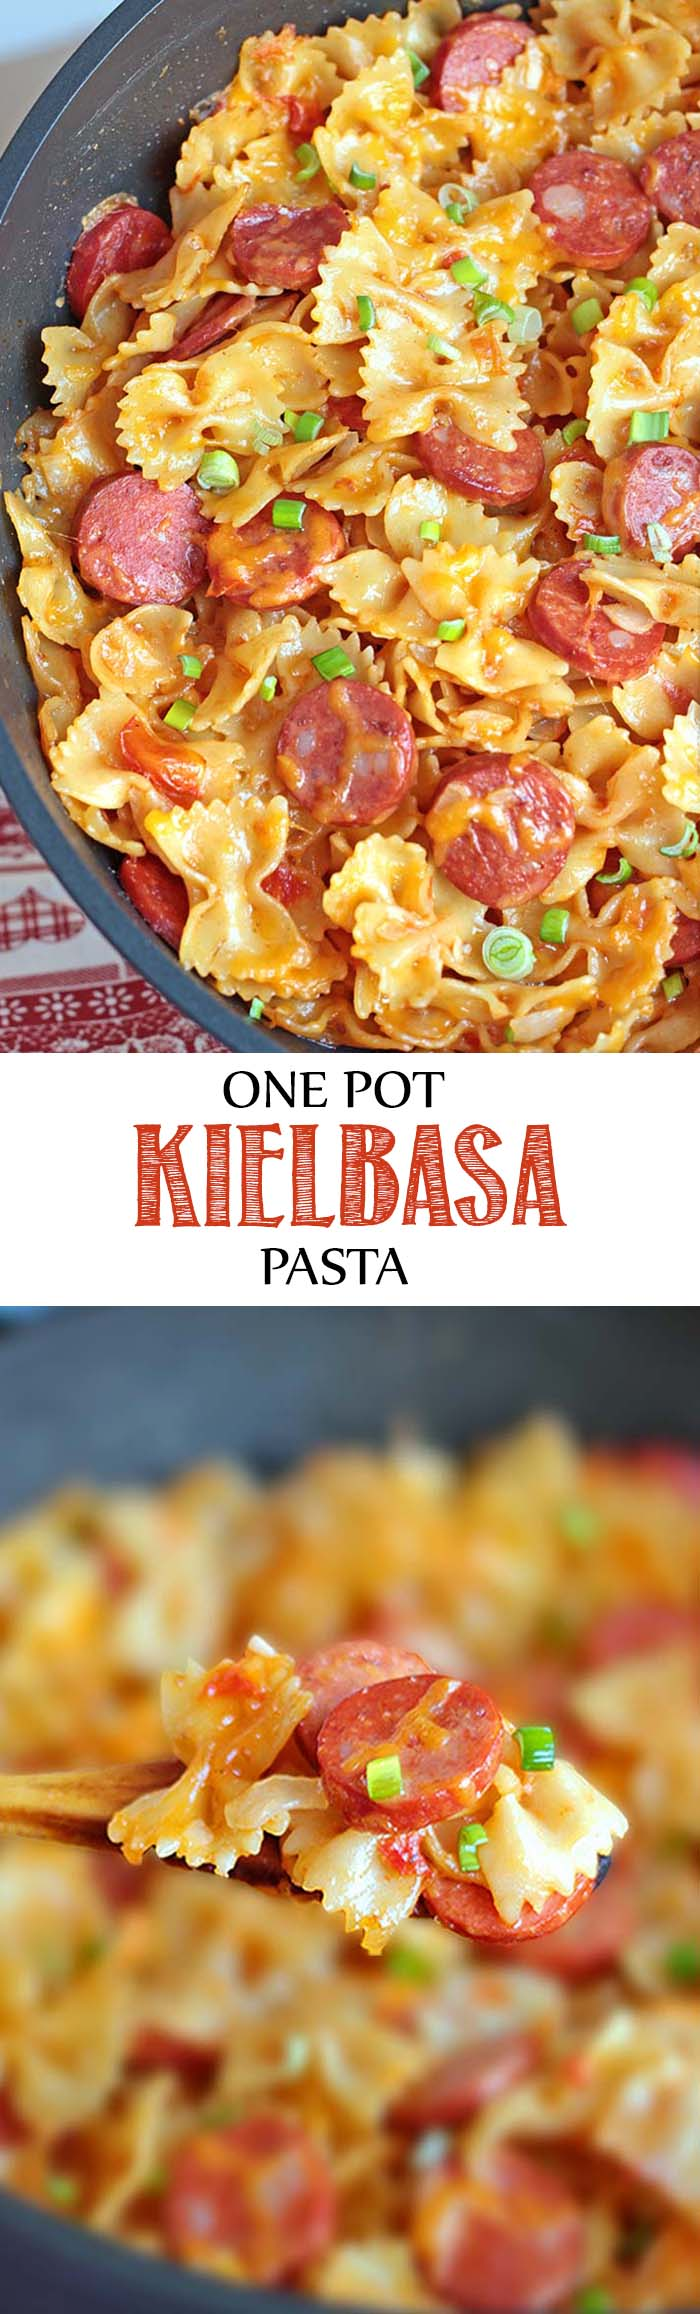 It's a cheesy pasta dish with Kielbasa sausage and garnished with chopped scallions. Enjoy! #pasta #onepot #kielbasa #dinner